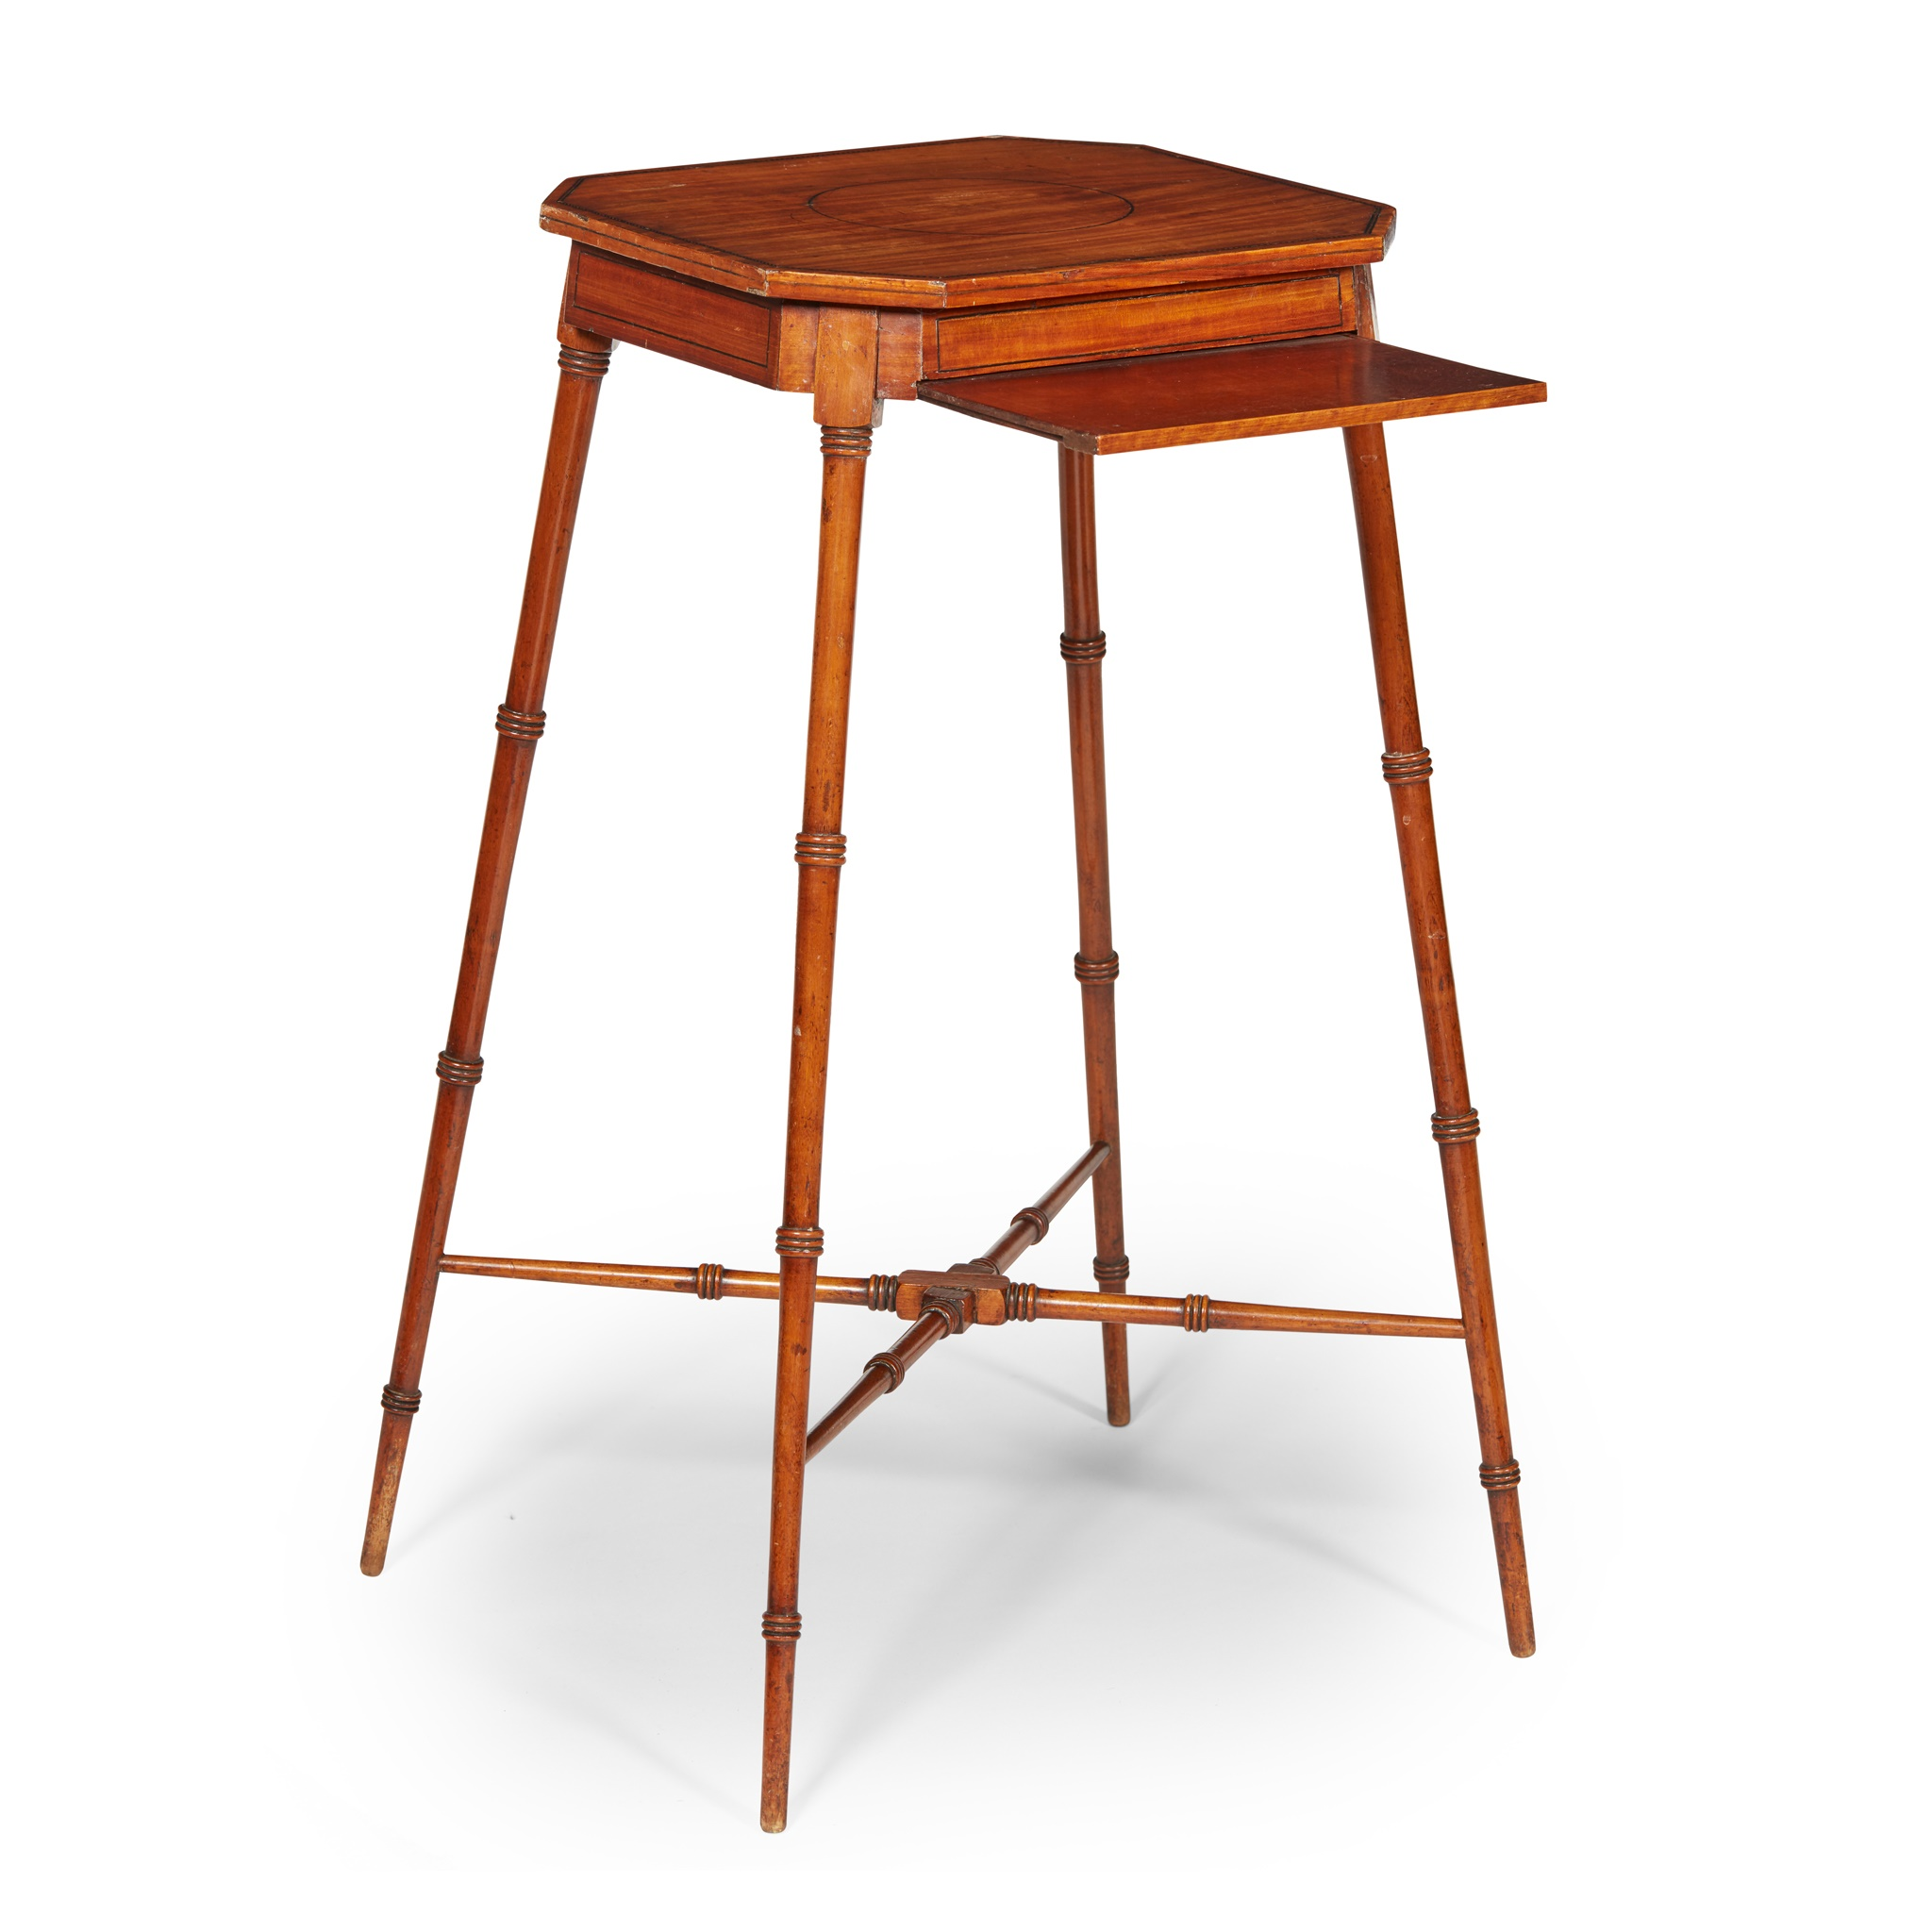 GEORGIAN STYLE SATINWOOD URN STAND 19TH CENTURY - Image 2 of 2